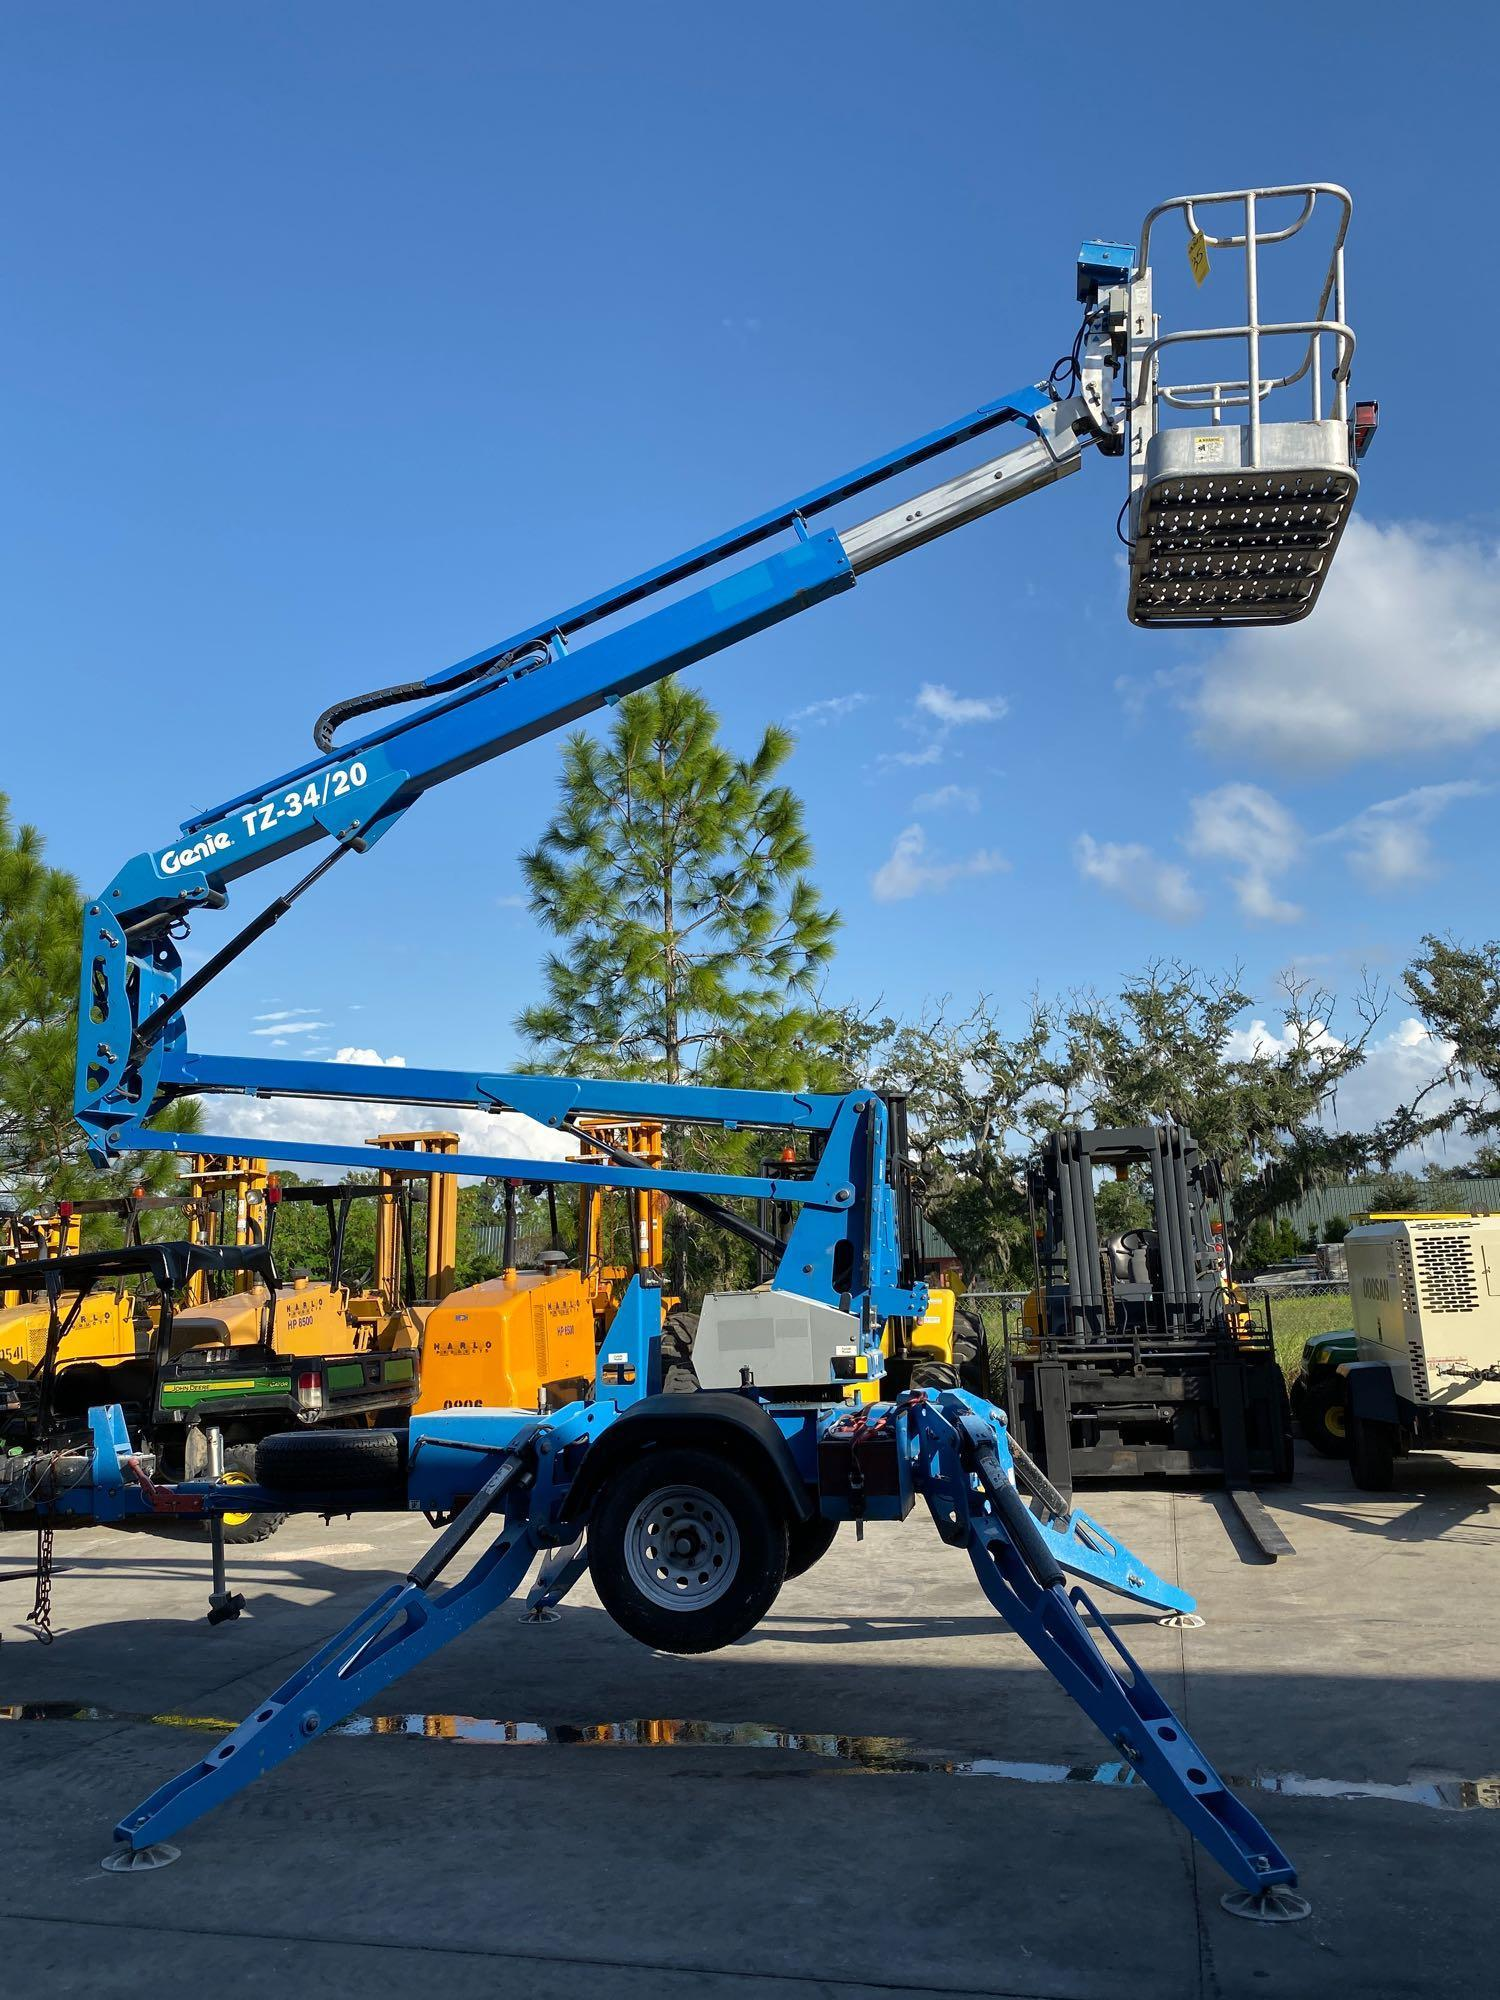 Lot 35 - 2015 GENIE TZ-34 TRAILER MOUNTED, TOW BEHIND, ARTICULATING ELECTRIC MAN LIFT, OUTRIGGERS, 34' PLATFO